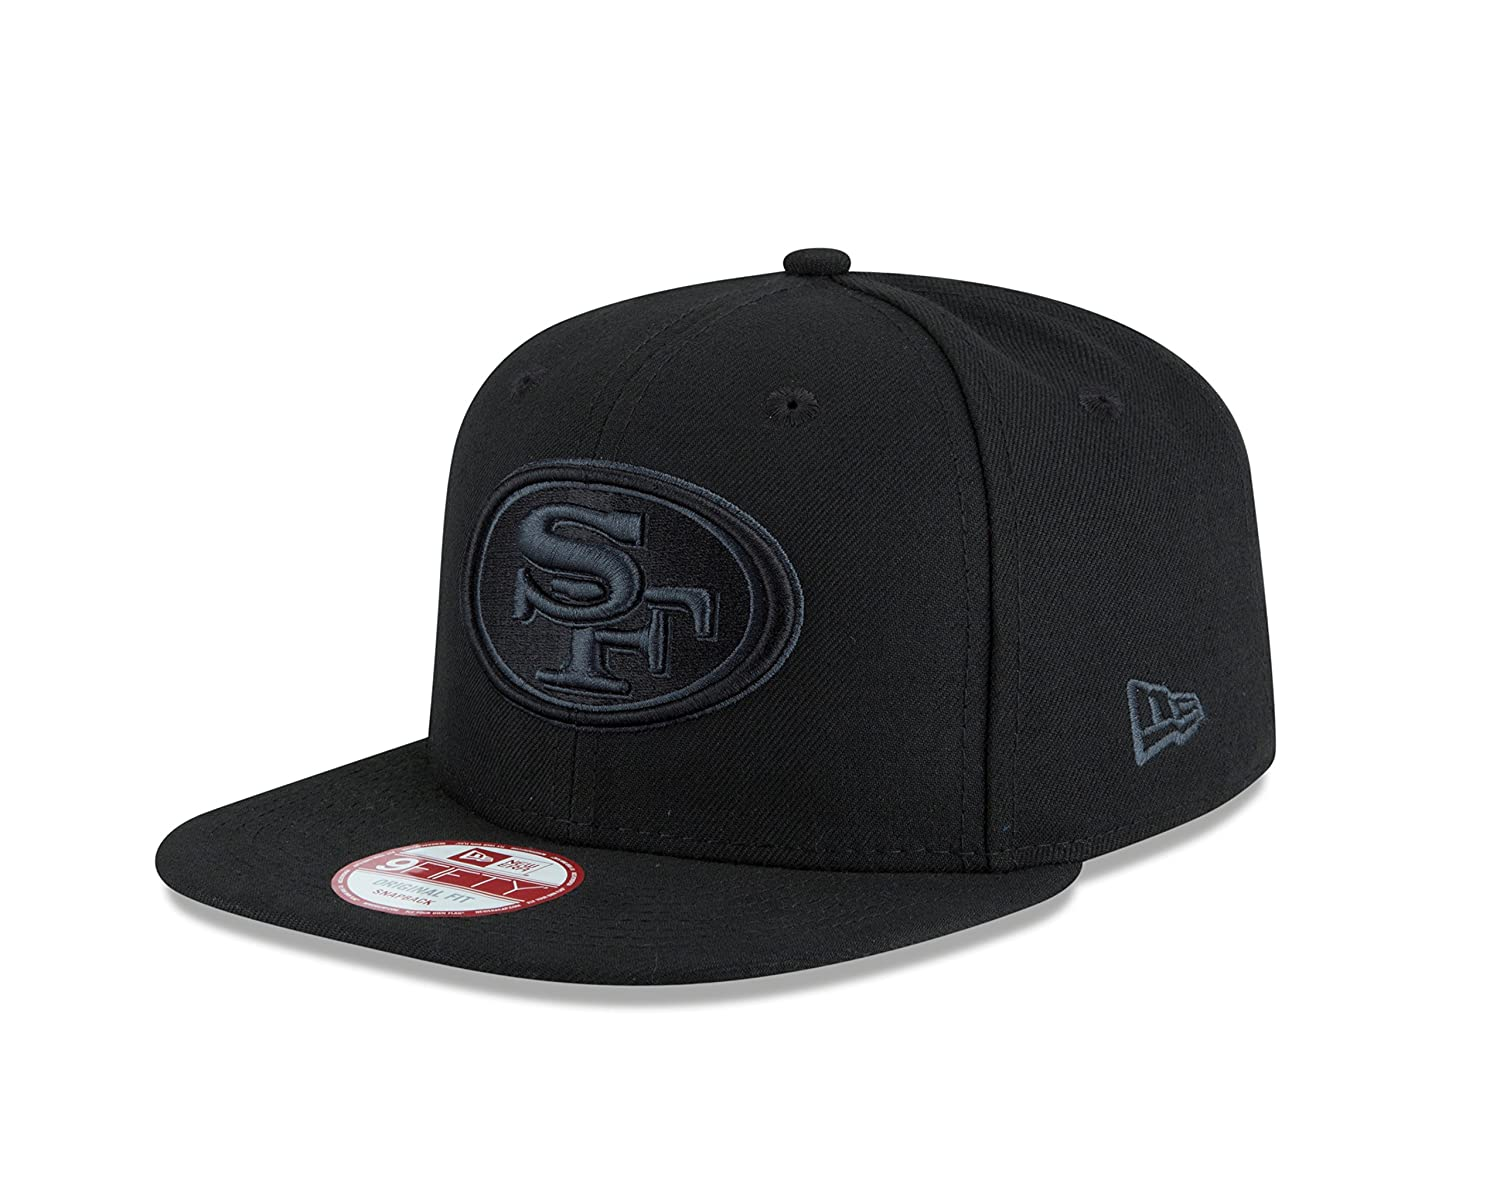 newest bdea3 86ab7 Amazon.com   NFL San Francisco 49Ers New Era Black Graphite 9FIFTY Original  Fit Cap, Black, One Size   Sports   Outdoors